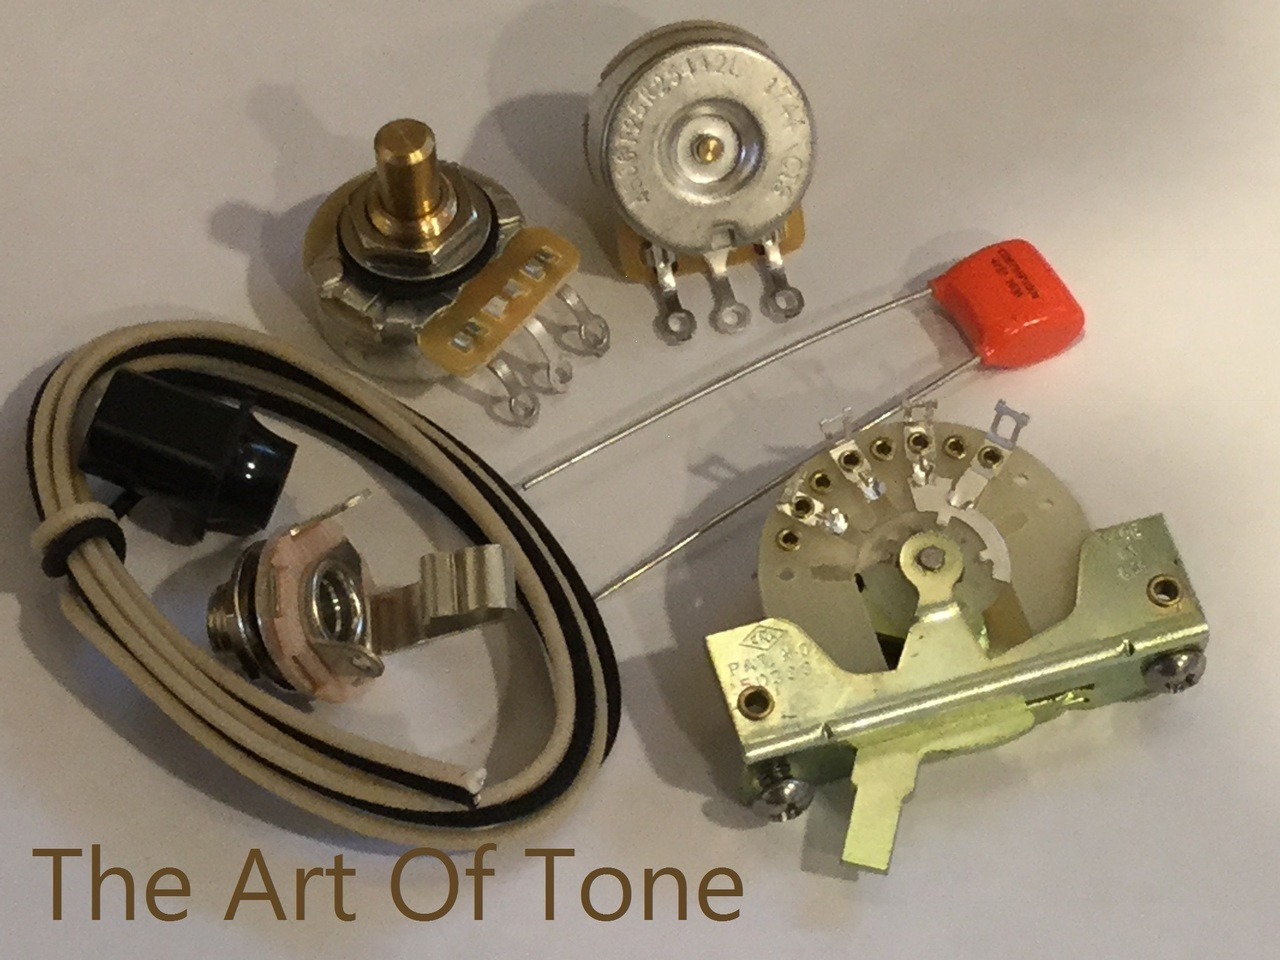 hight resolution of deluxe taot fender telecaster wiring kit the art of tone